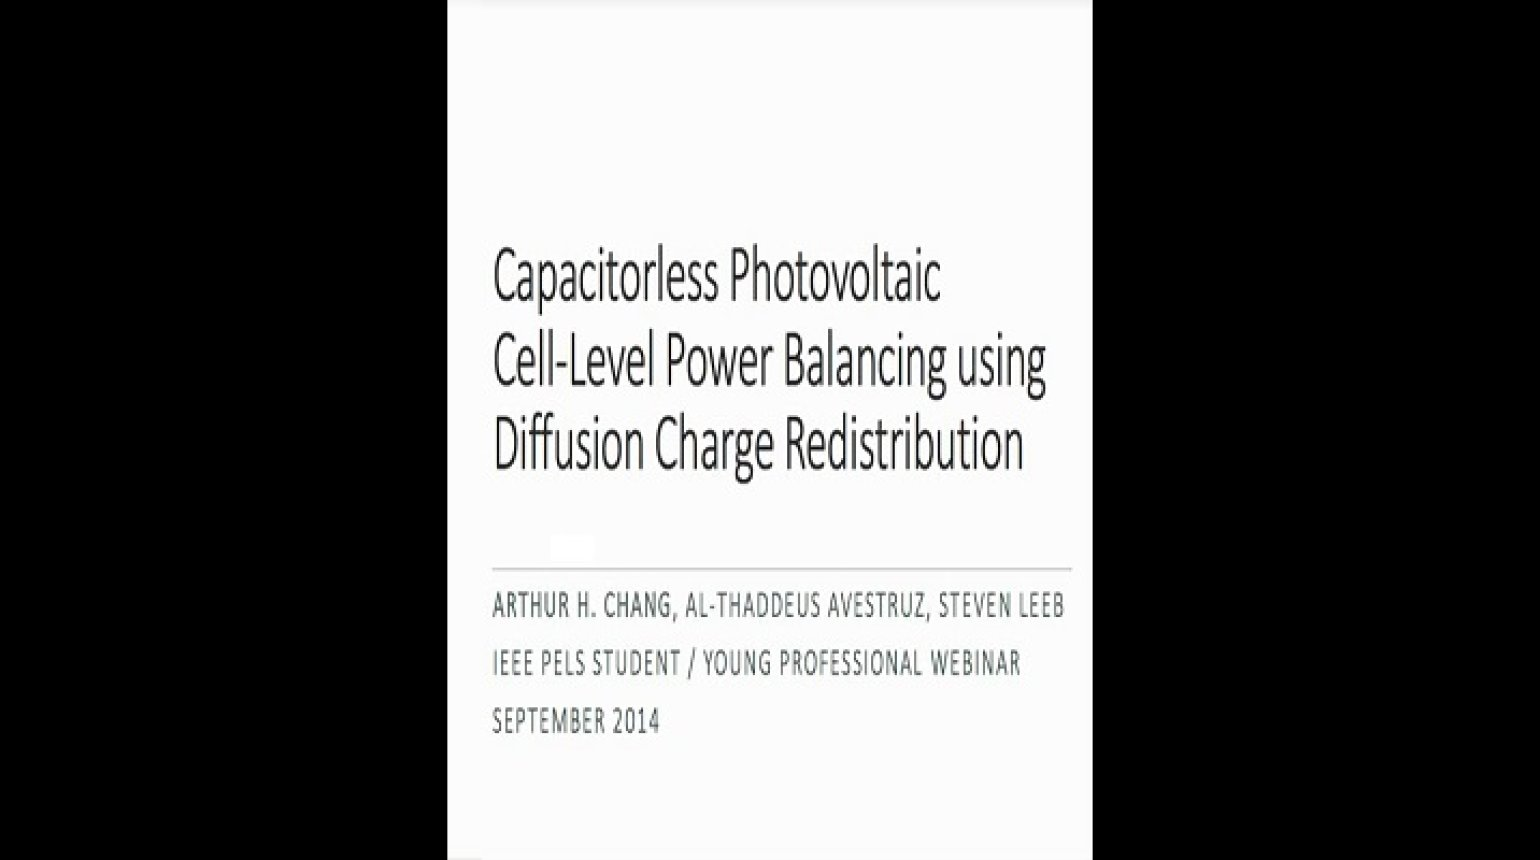 YP webinar: Capacitorless Photovoltaic (PV) Cell-Level Power Balancing using Diffusion Charge Redistribution Video